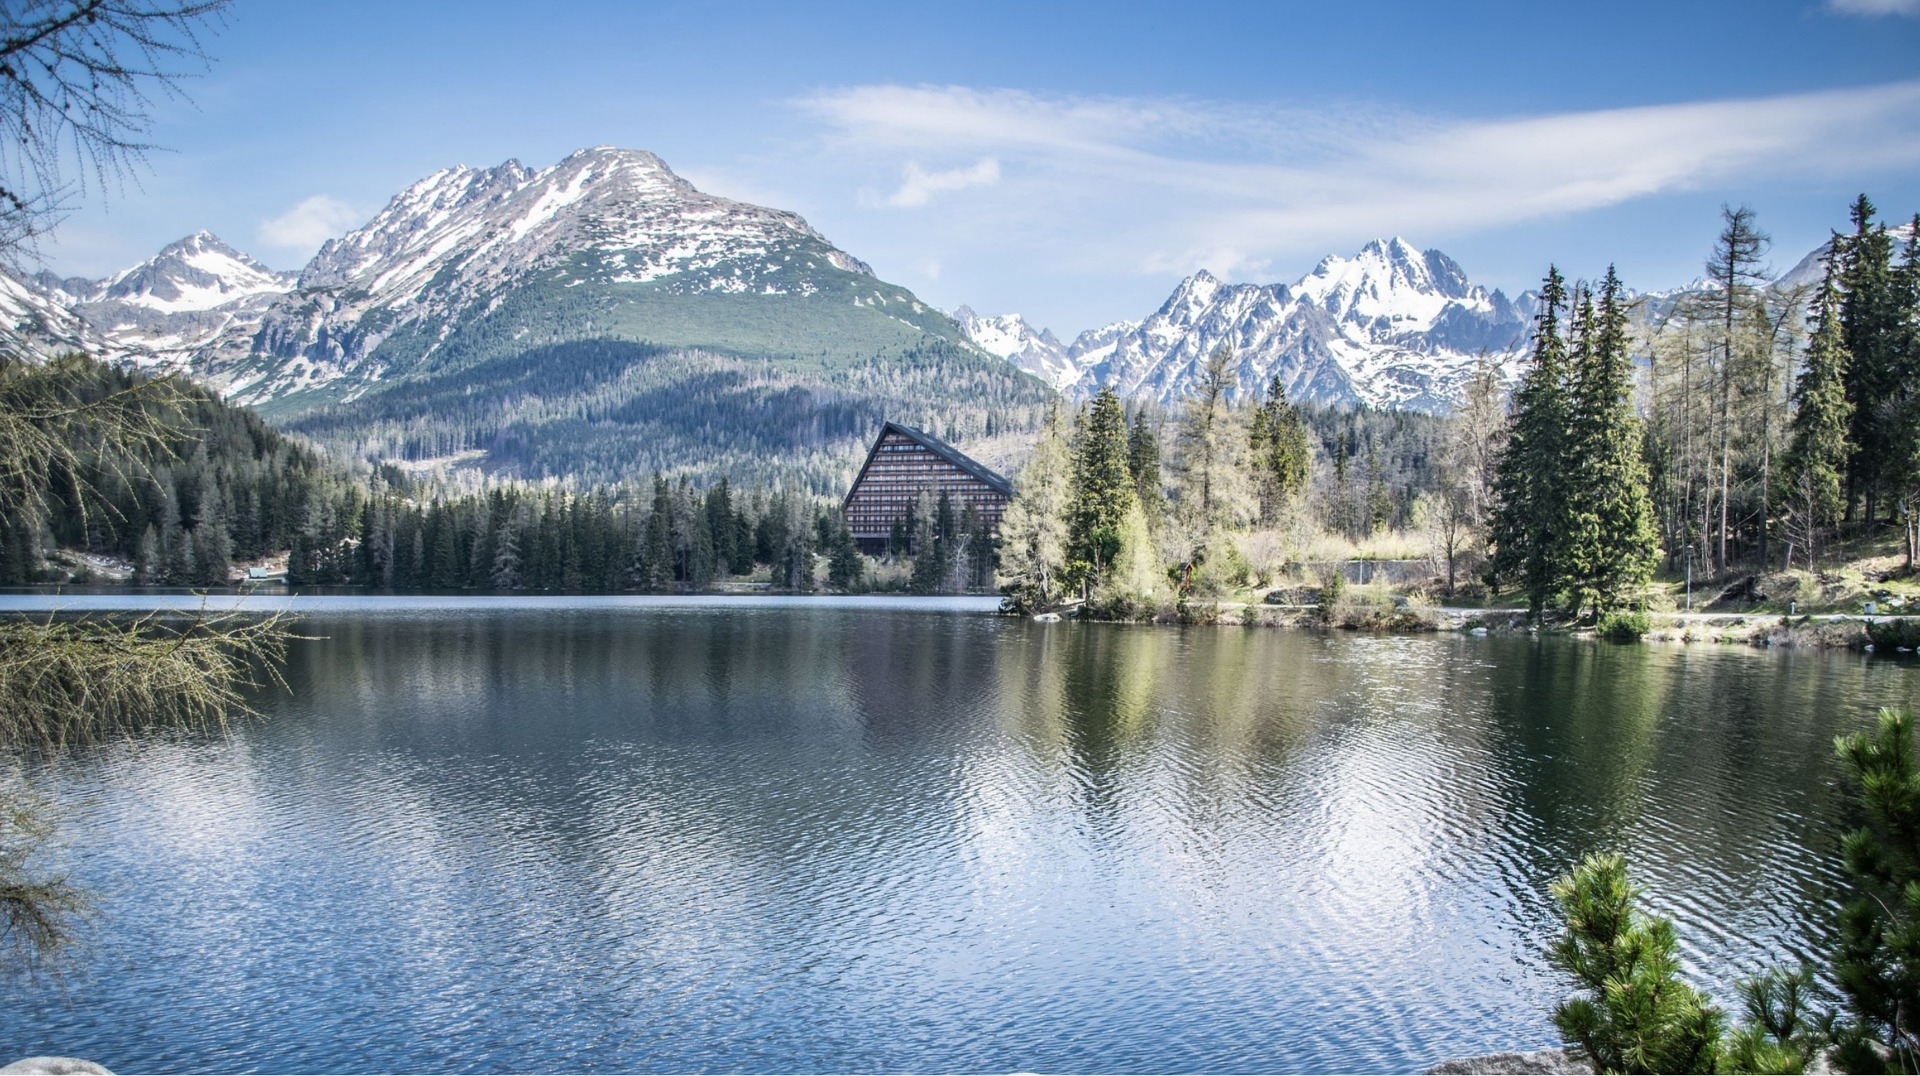 Bettersafe Best places to visit in Europe 2019 - High Tatras Slovakia